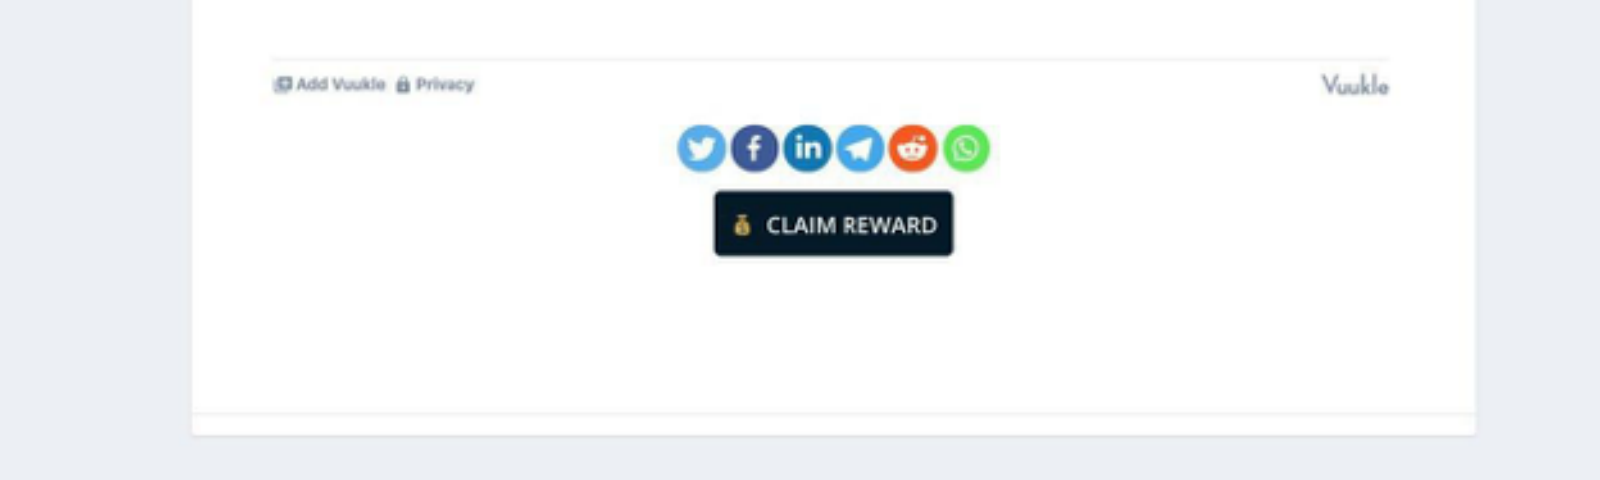 How to claim REWARDS on GCNews.io for reading